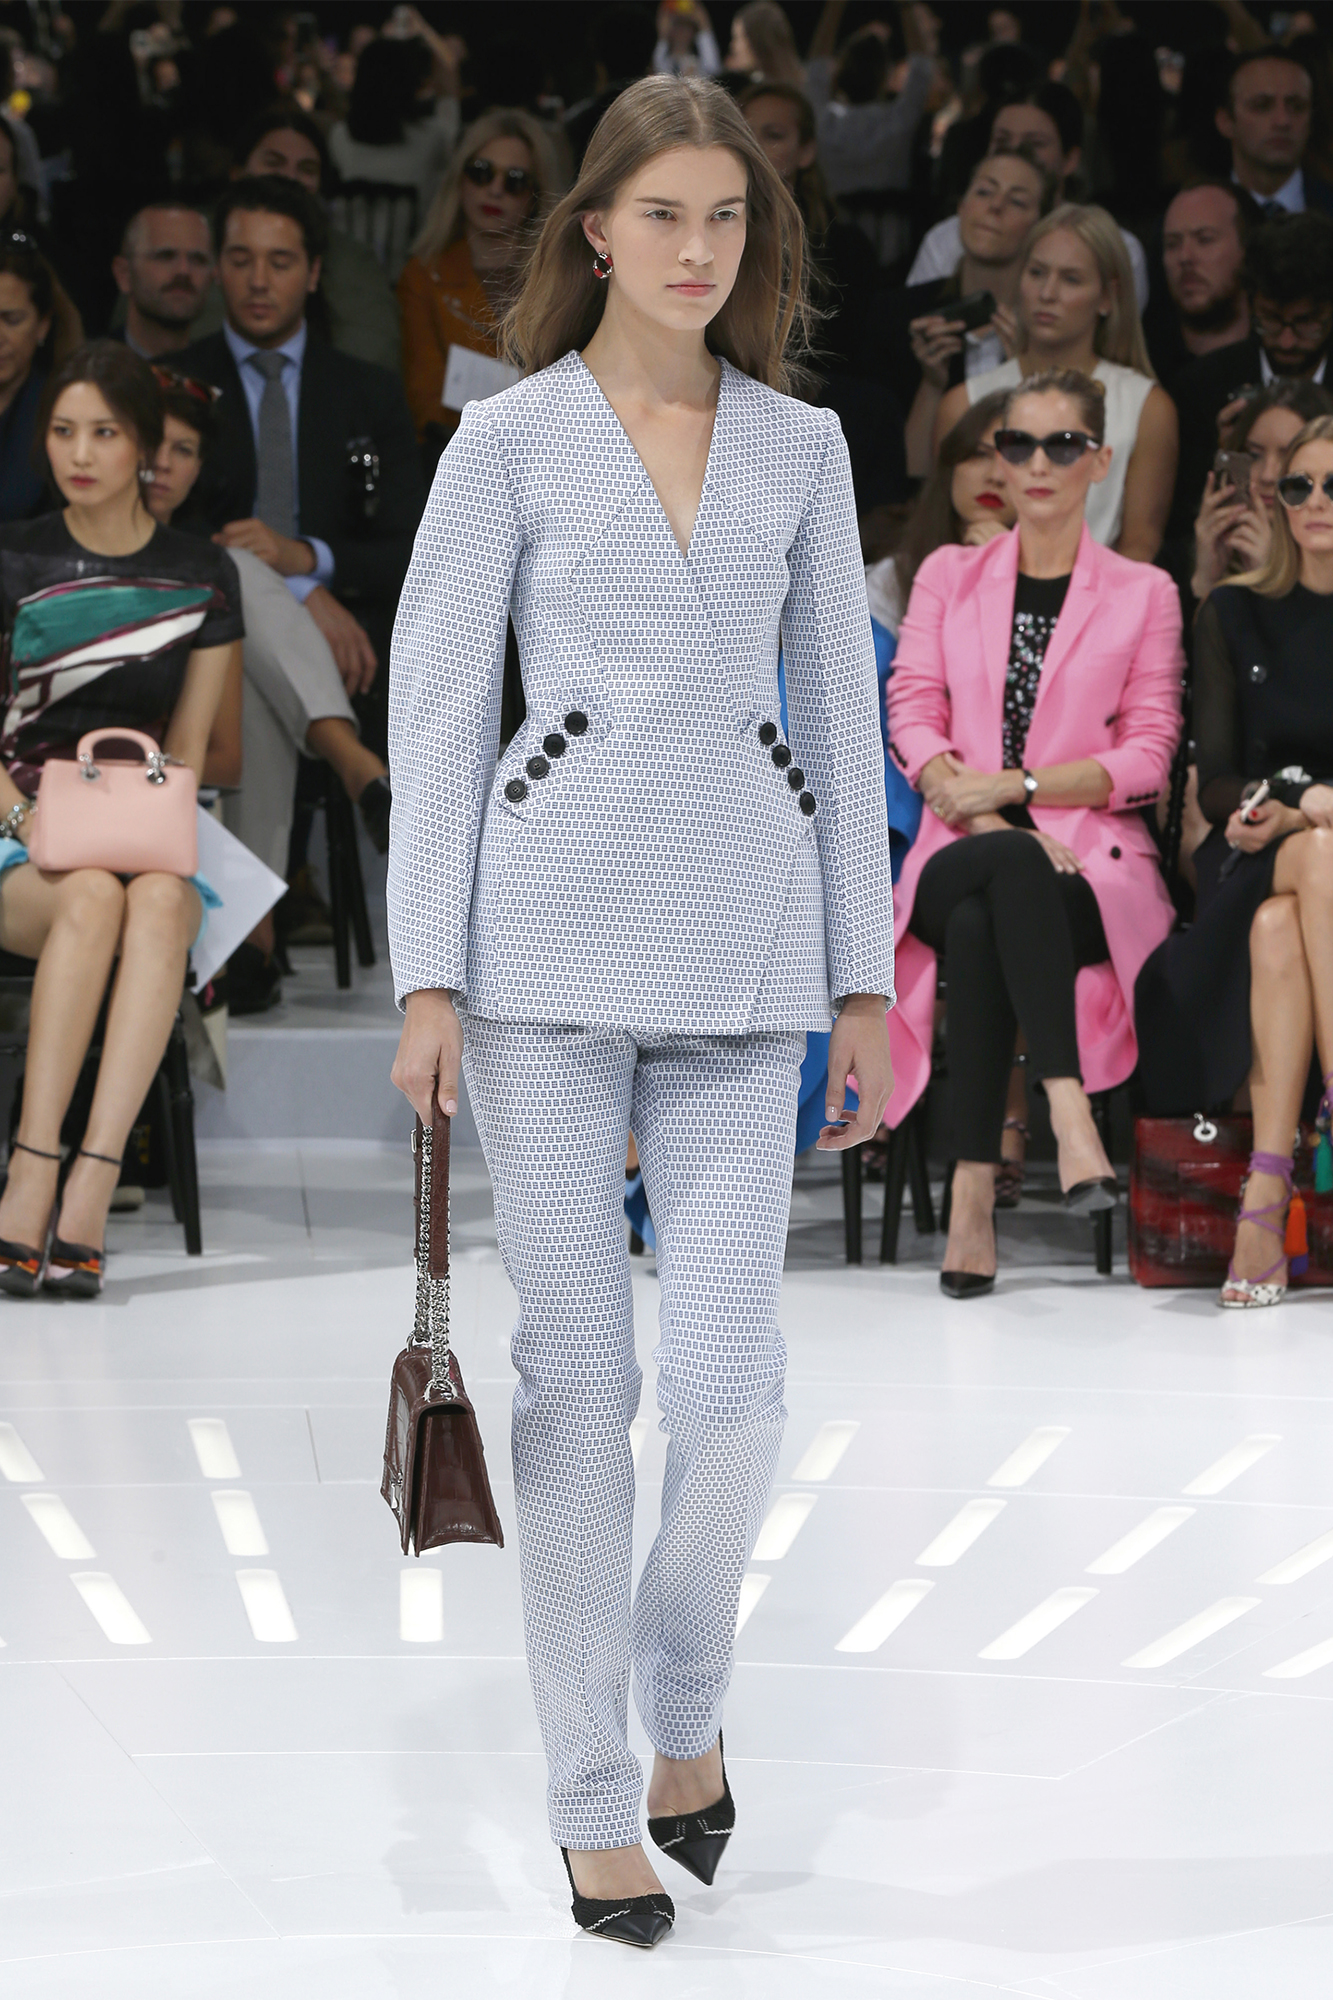 New Western Fashion Christian Dior Ready To Wear Dresses Spring Summer Collection 2015 (26)